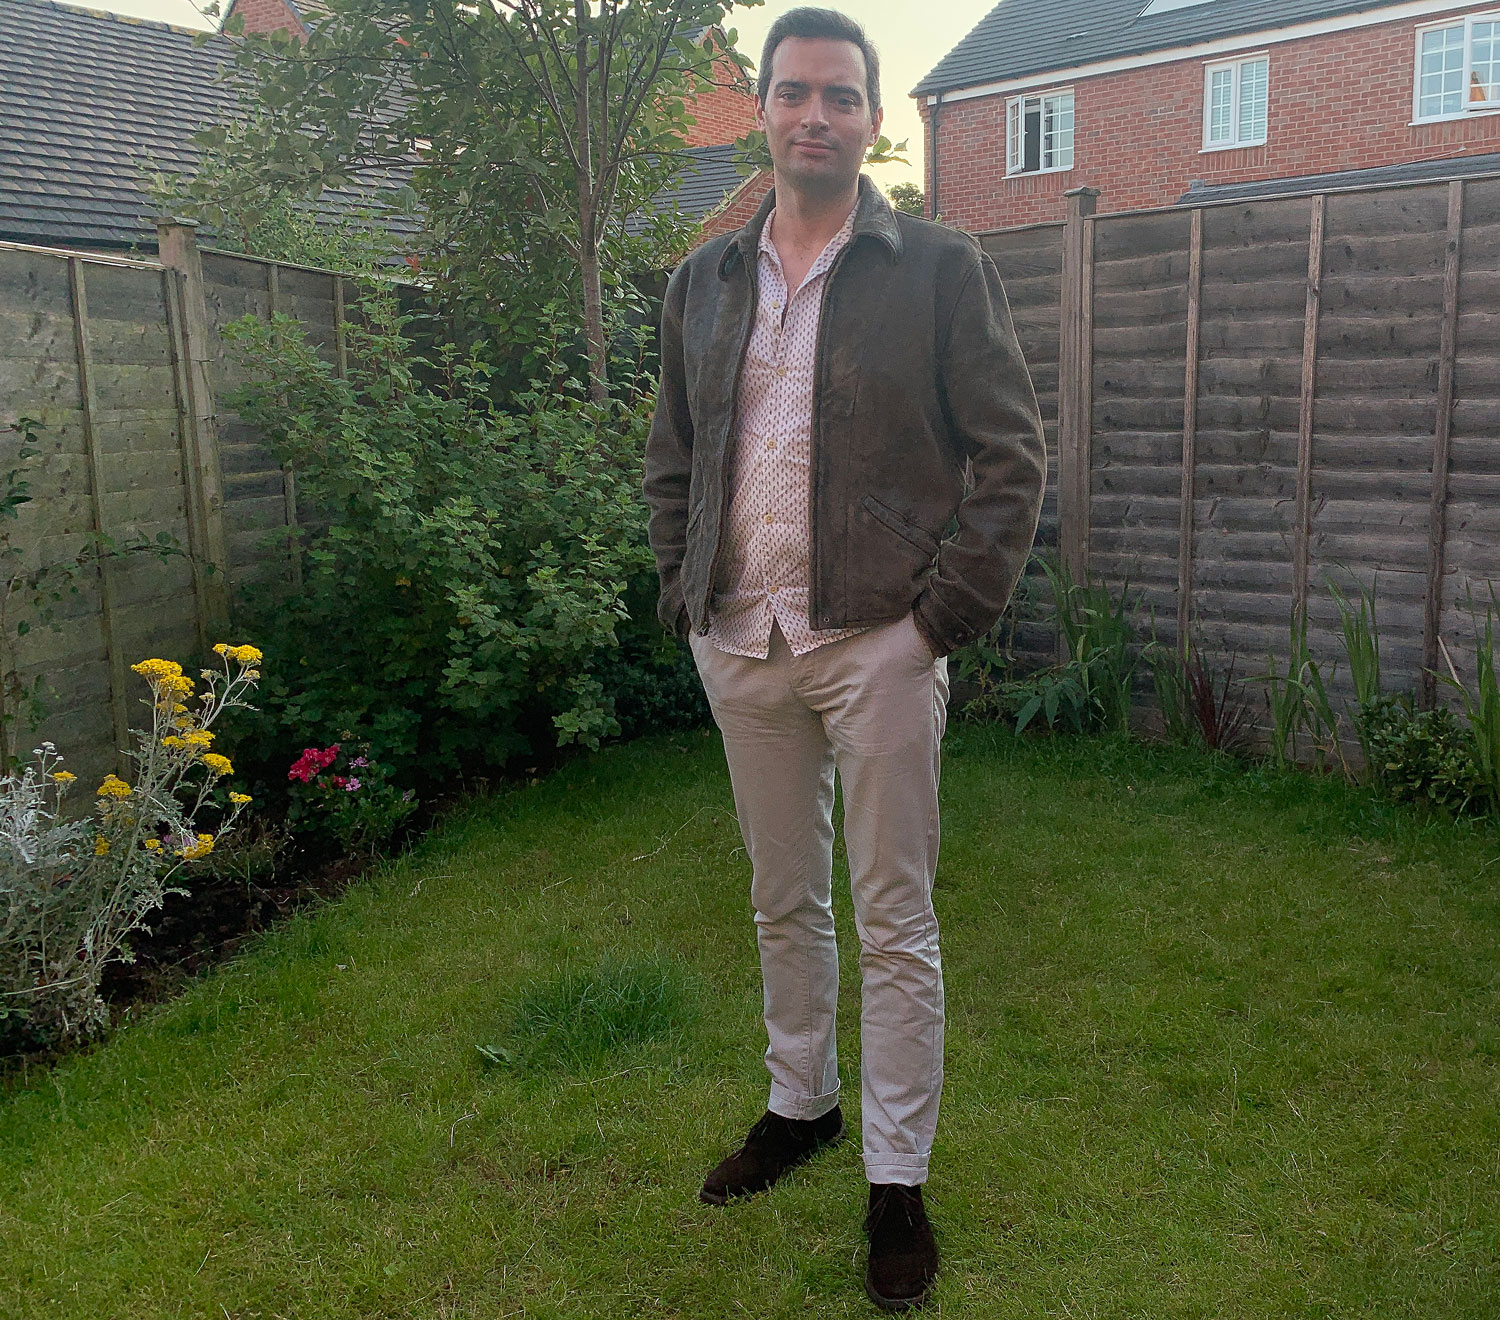 Daniel Gaster wearing the Leather Jacket from Skyfall in his garden